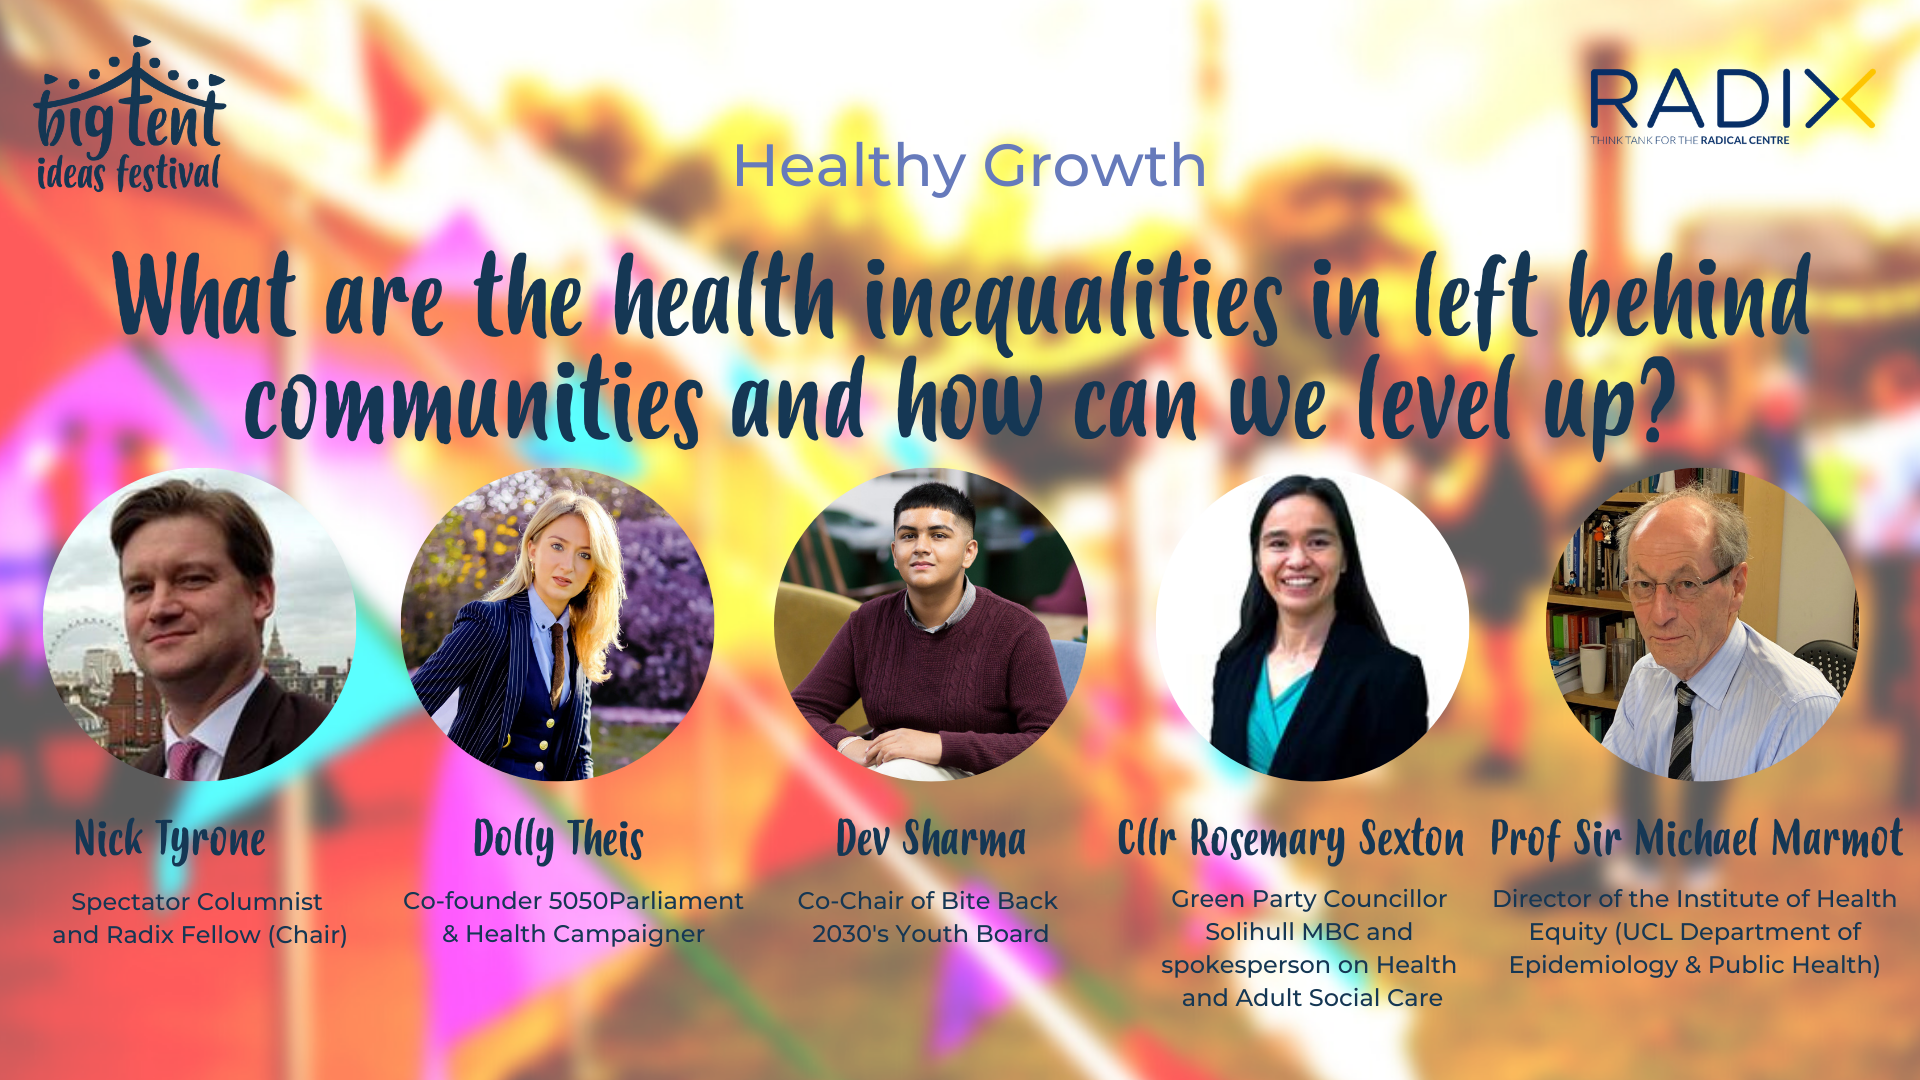 What are the health inequalities in left behind communities and how can we level up?